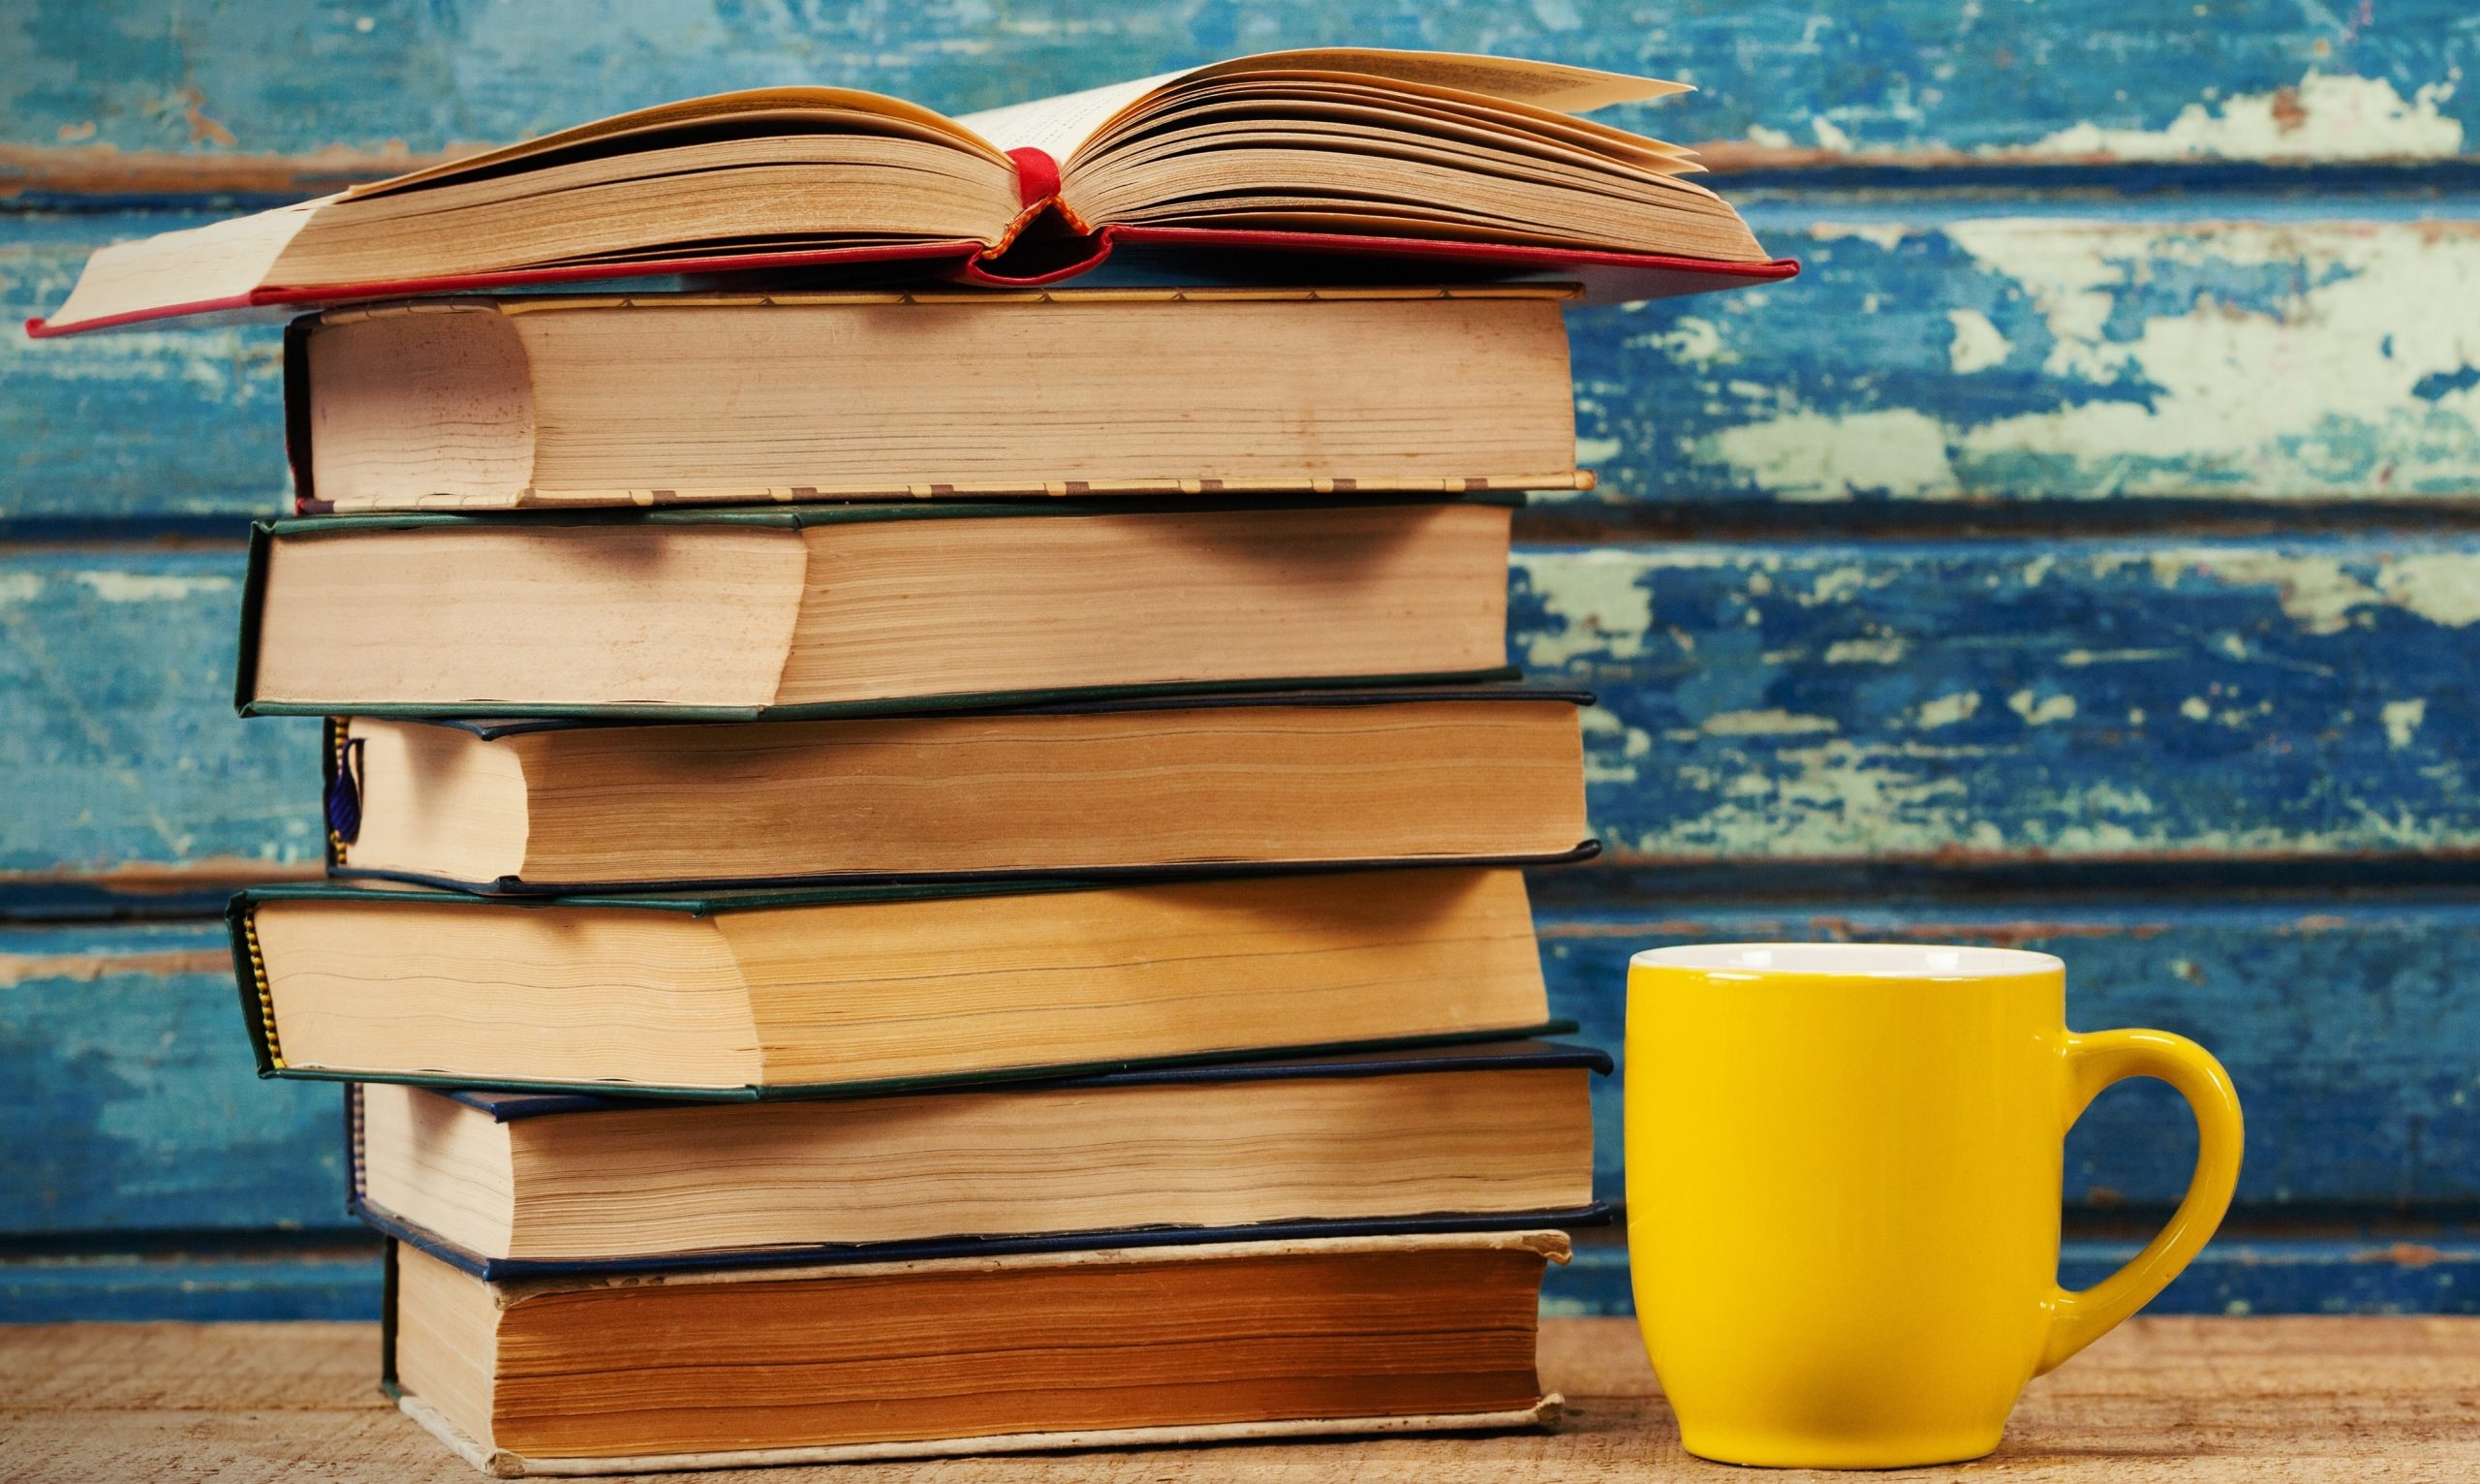 A stack of marketing strategy books is sitting next to a yellow coffee mug. There is a blue wood background.